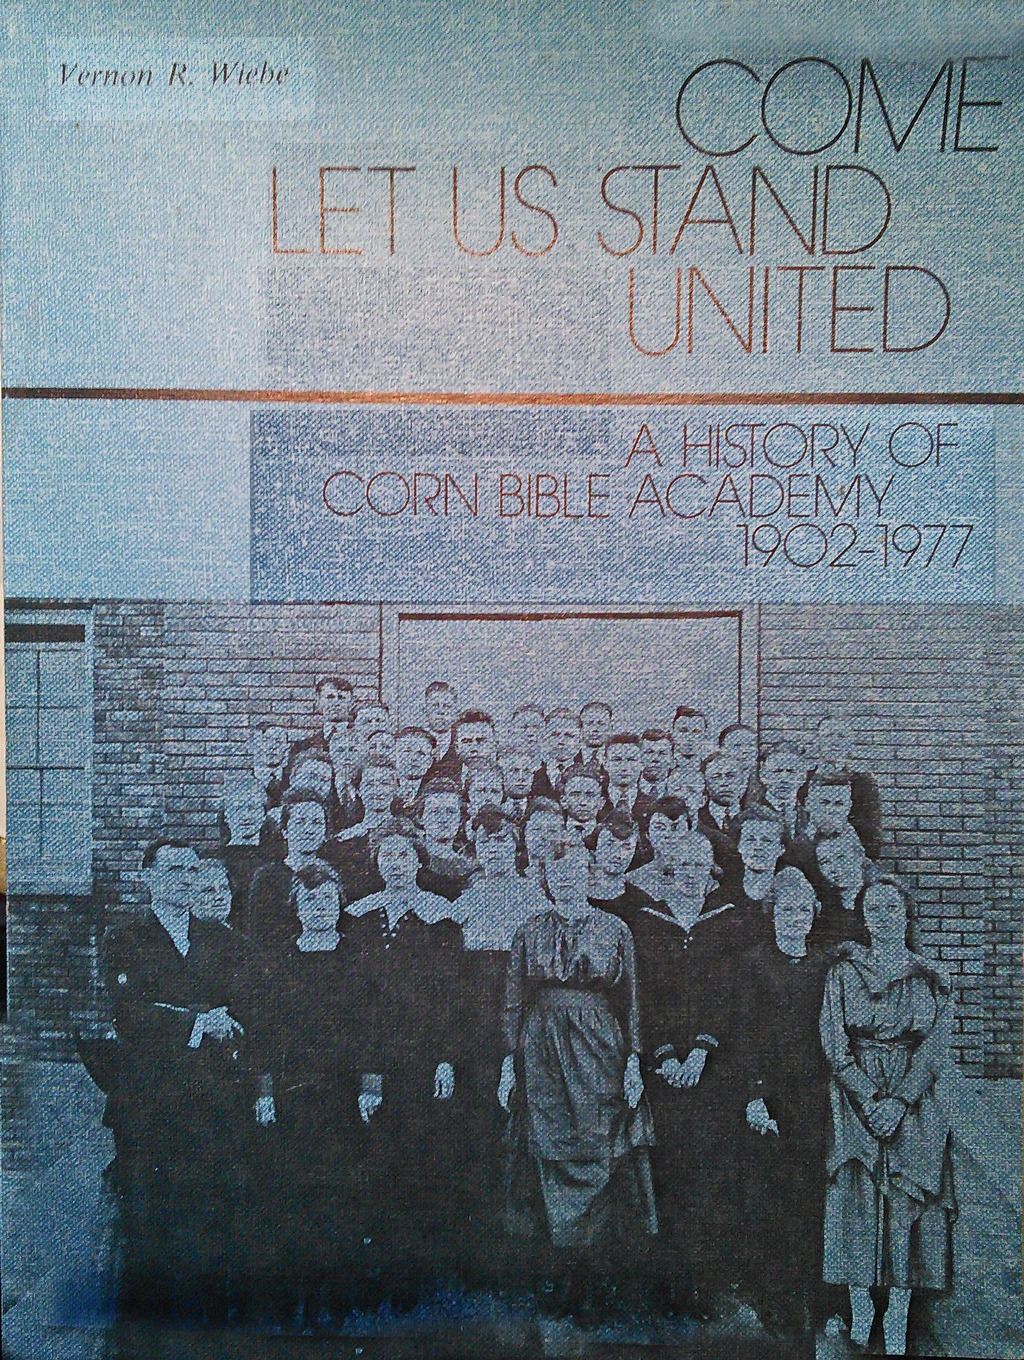 Come Let Us Stand United Vernon R. Wiebe